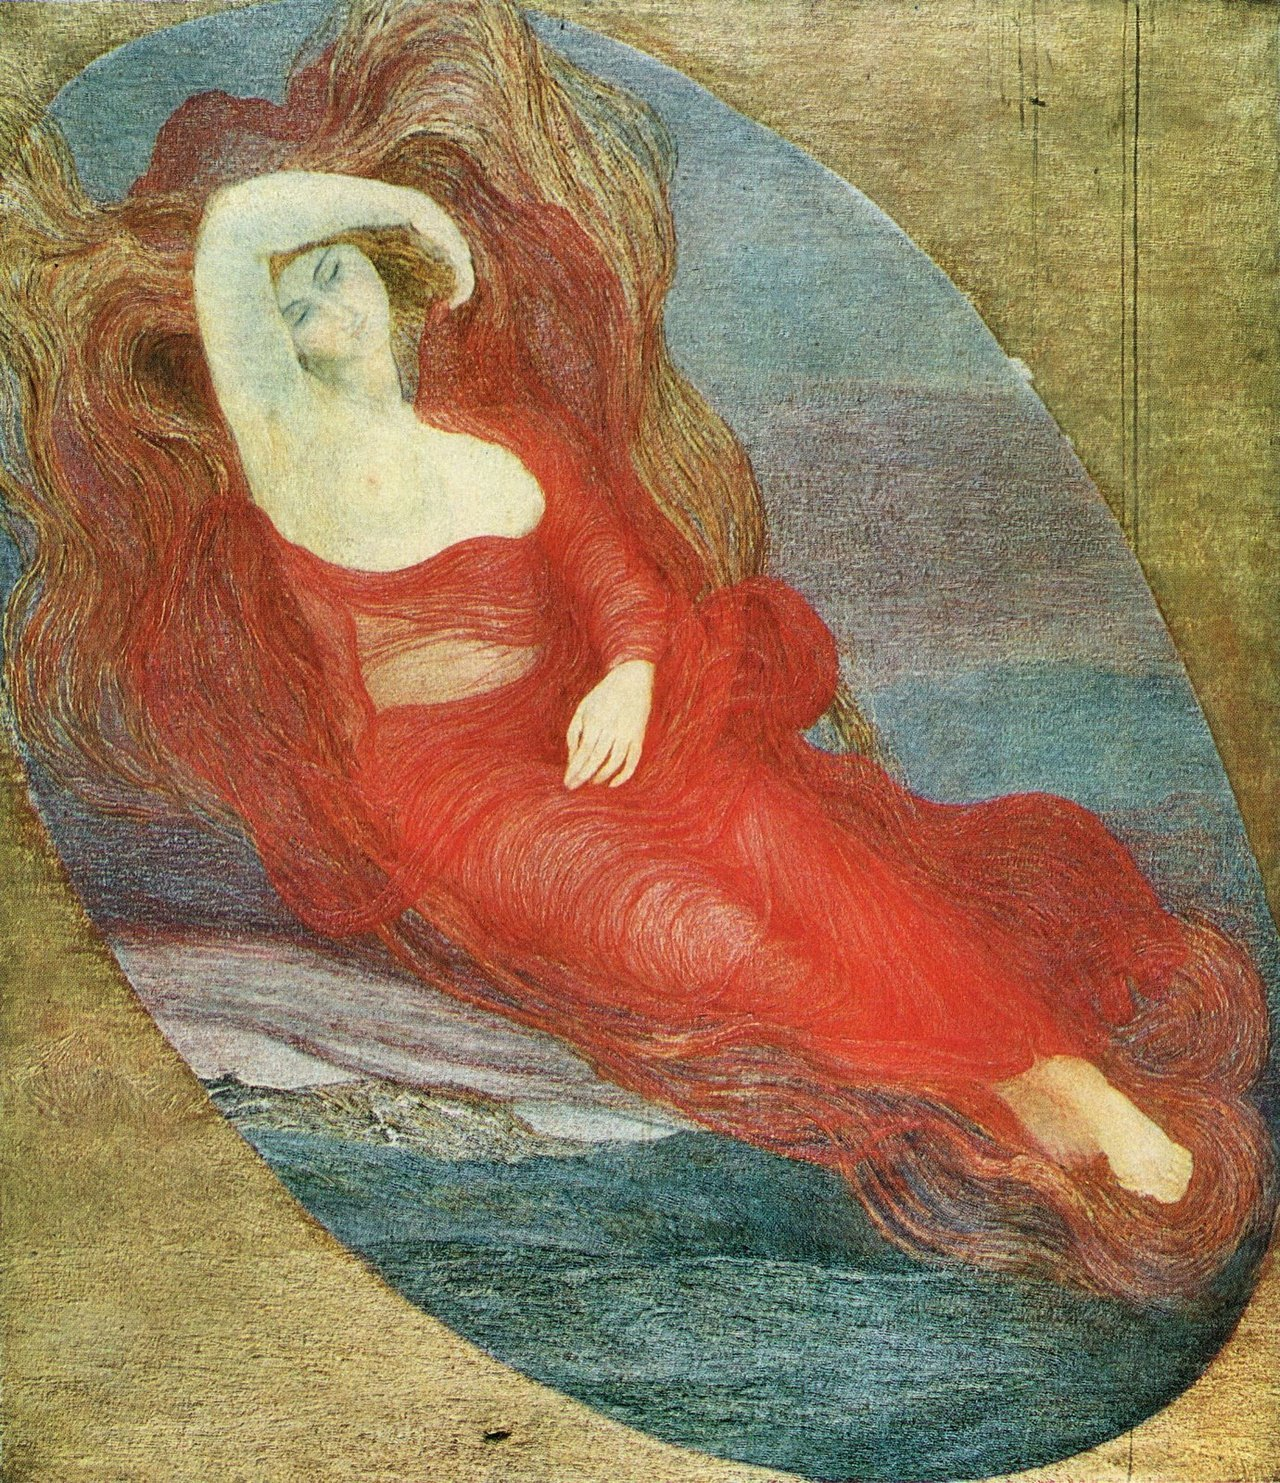 Giovanni Segantini, Goddess of Love